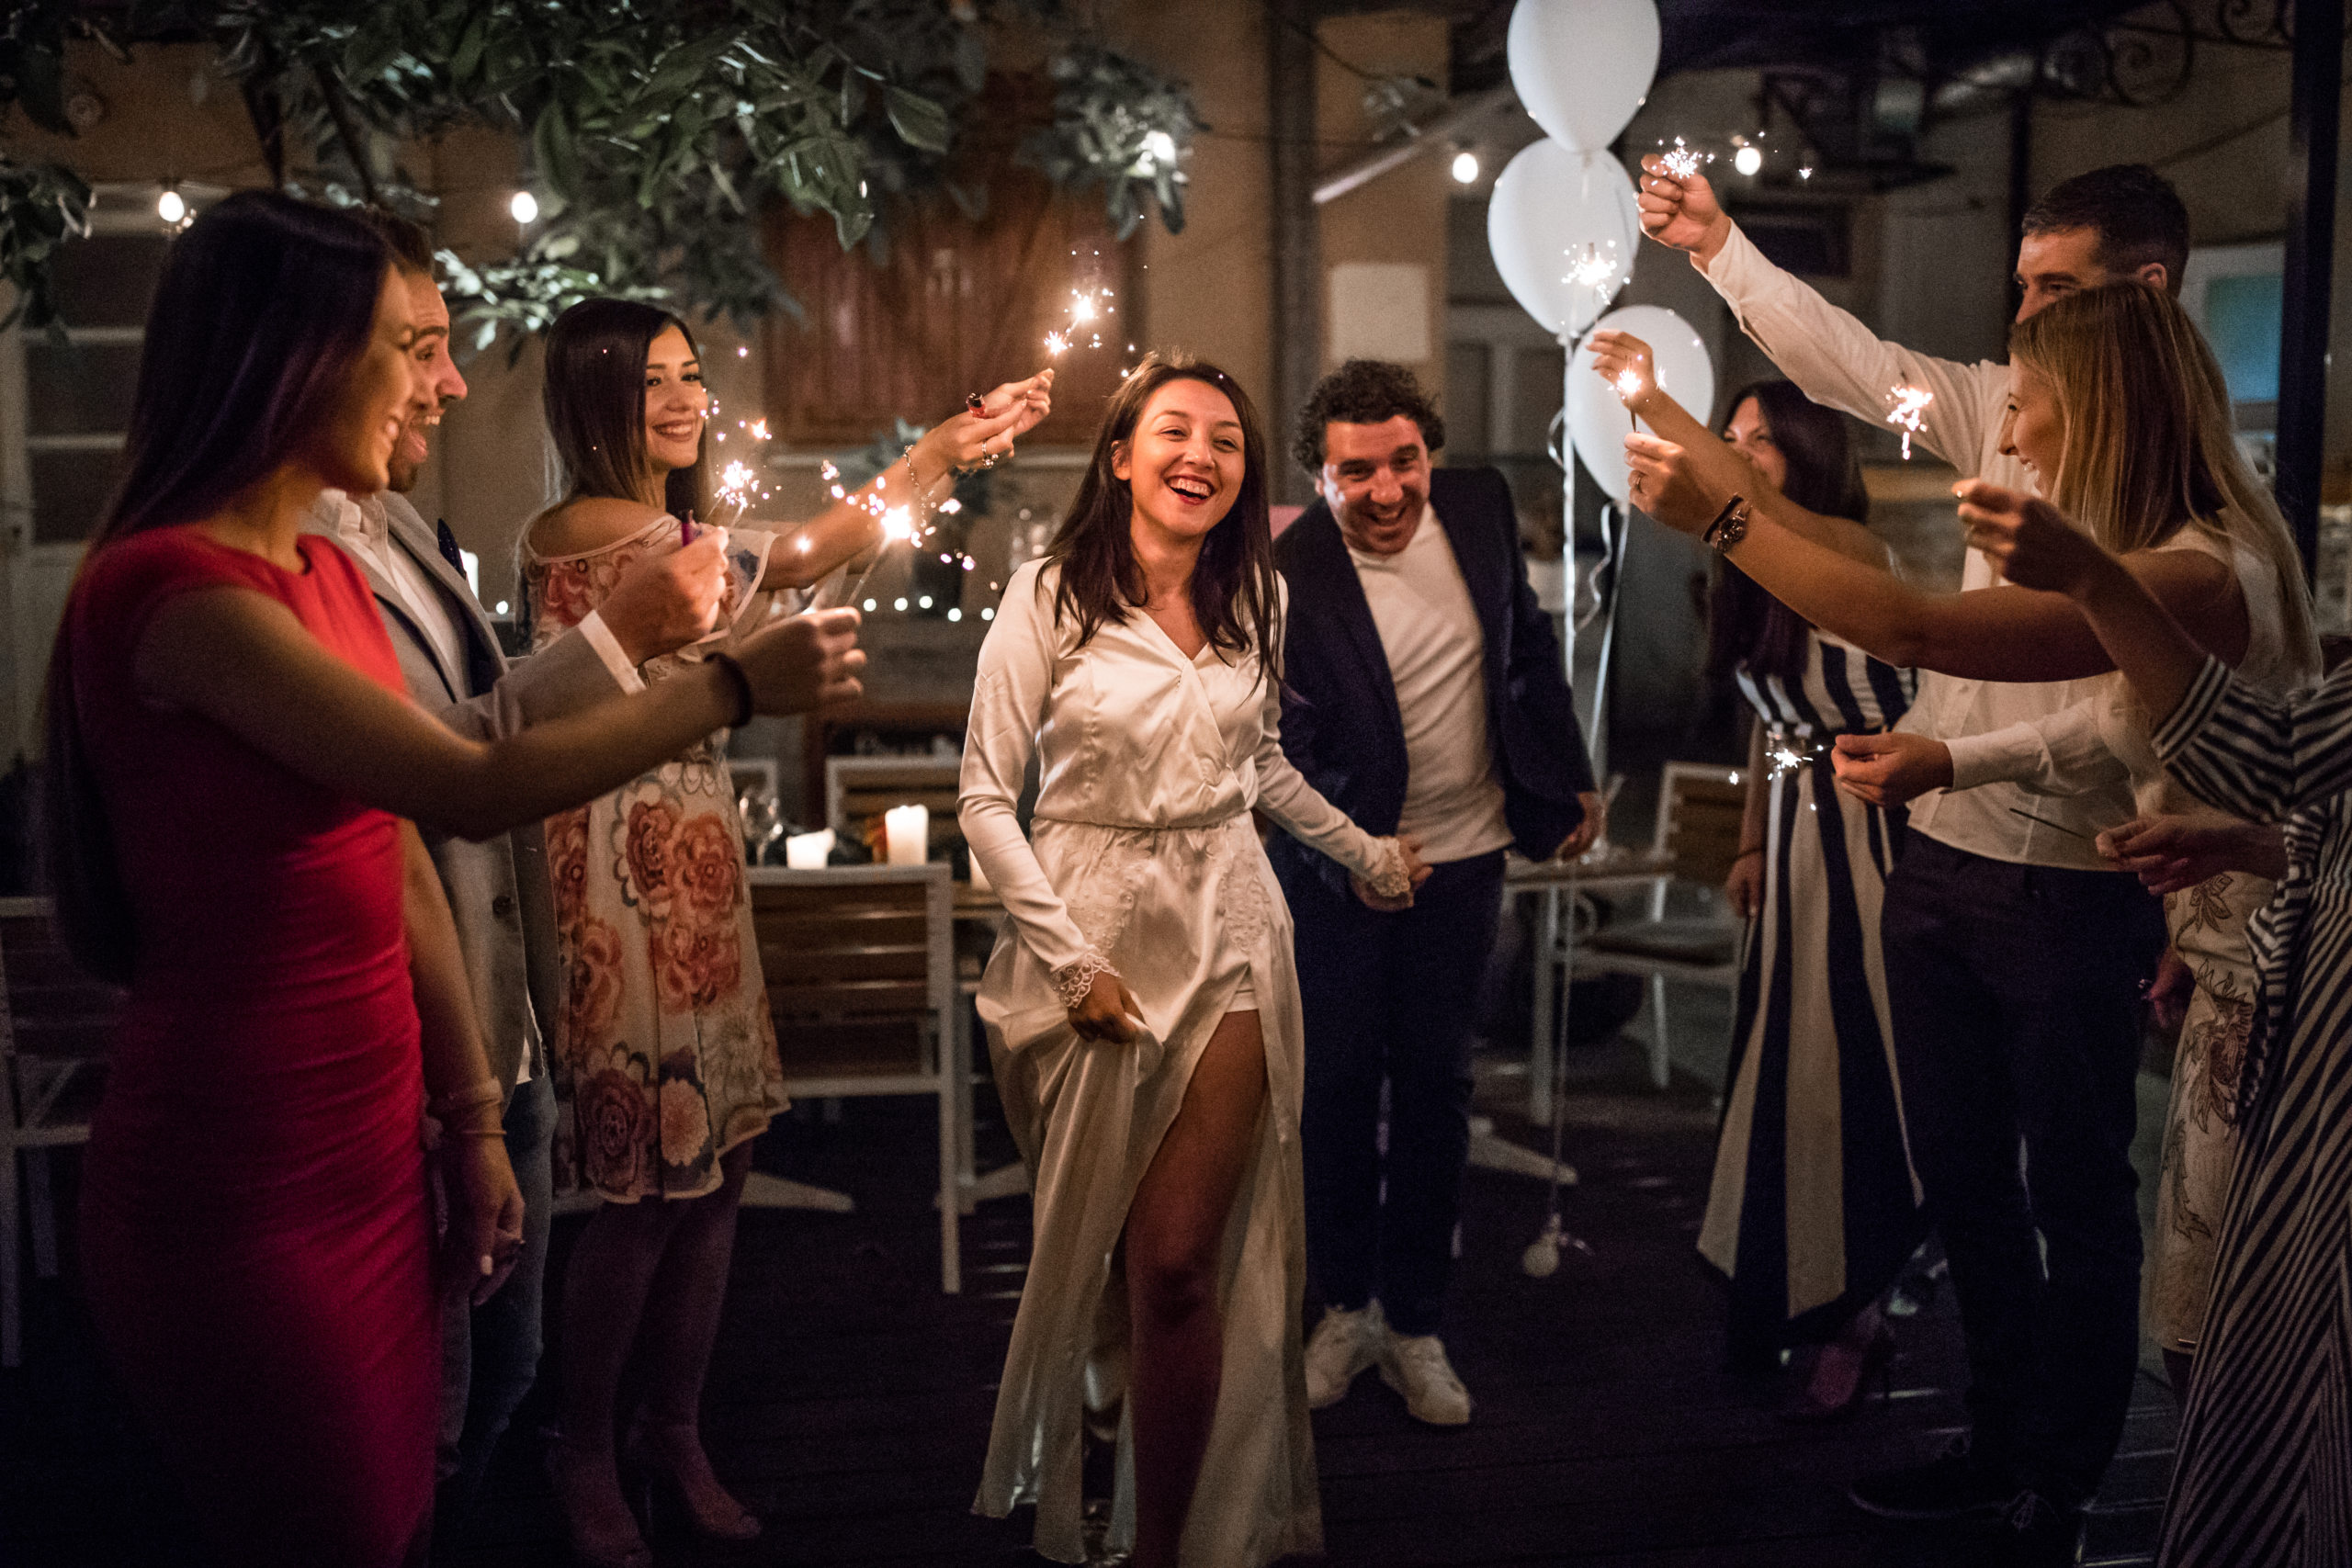 How One Couple Threw a $3,500 Wedding Bash